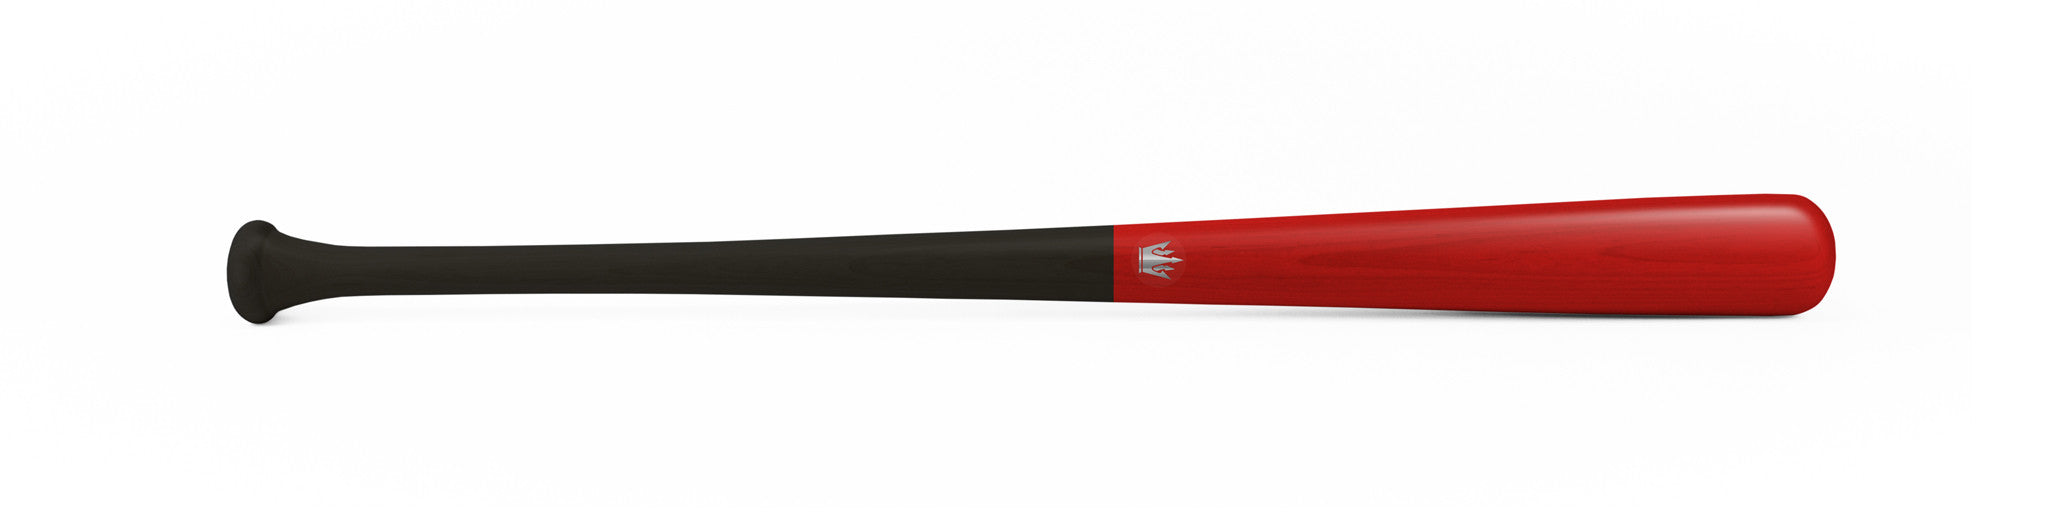 Wood bat - Birch model Y110 Black Red - 15